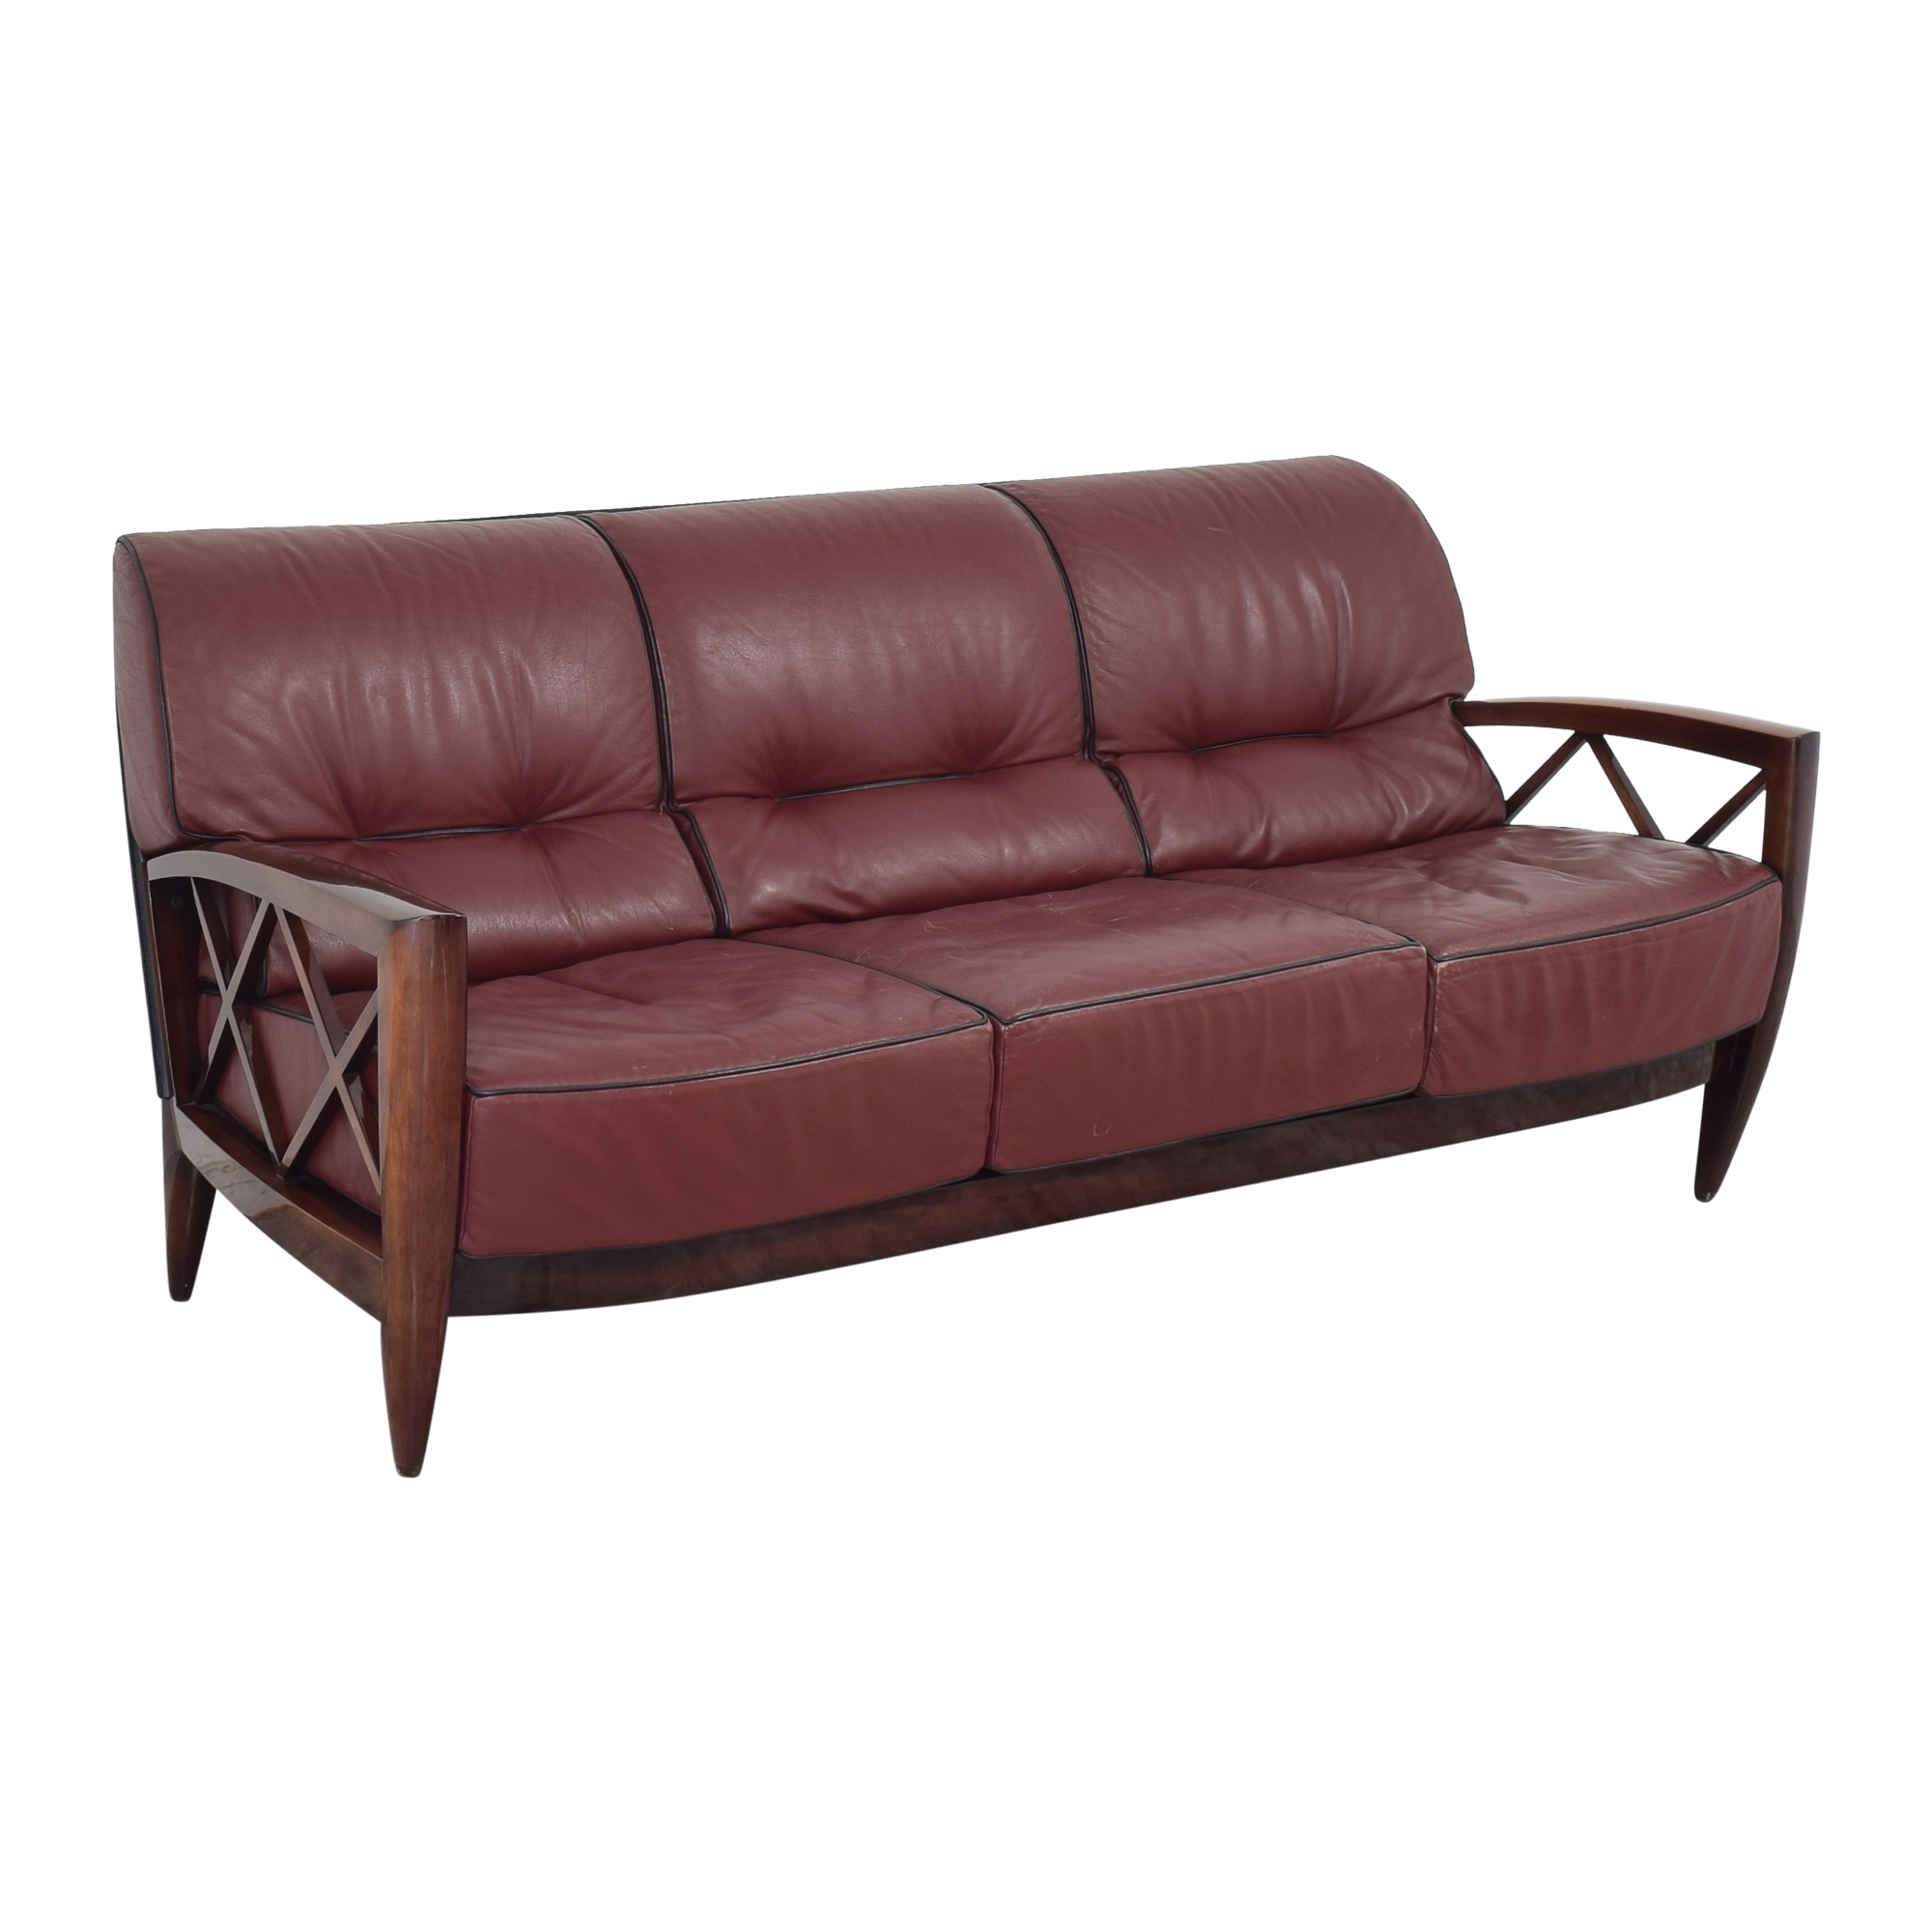 Pace Collection i4Mariani for Pace Collection Three Seat Sofa